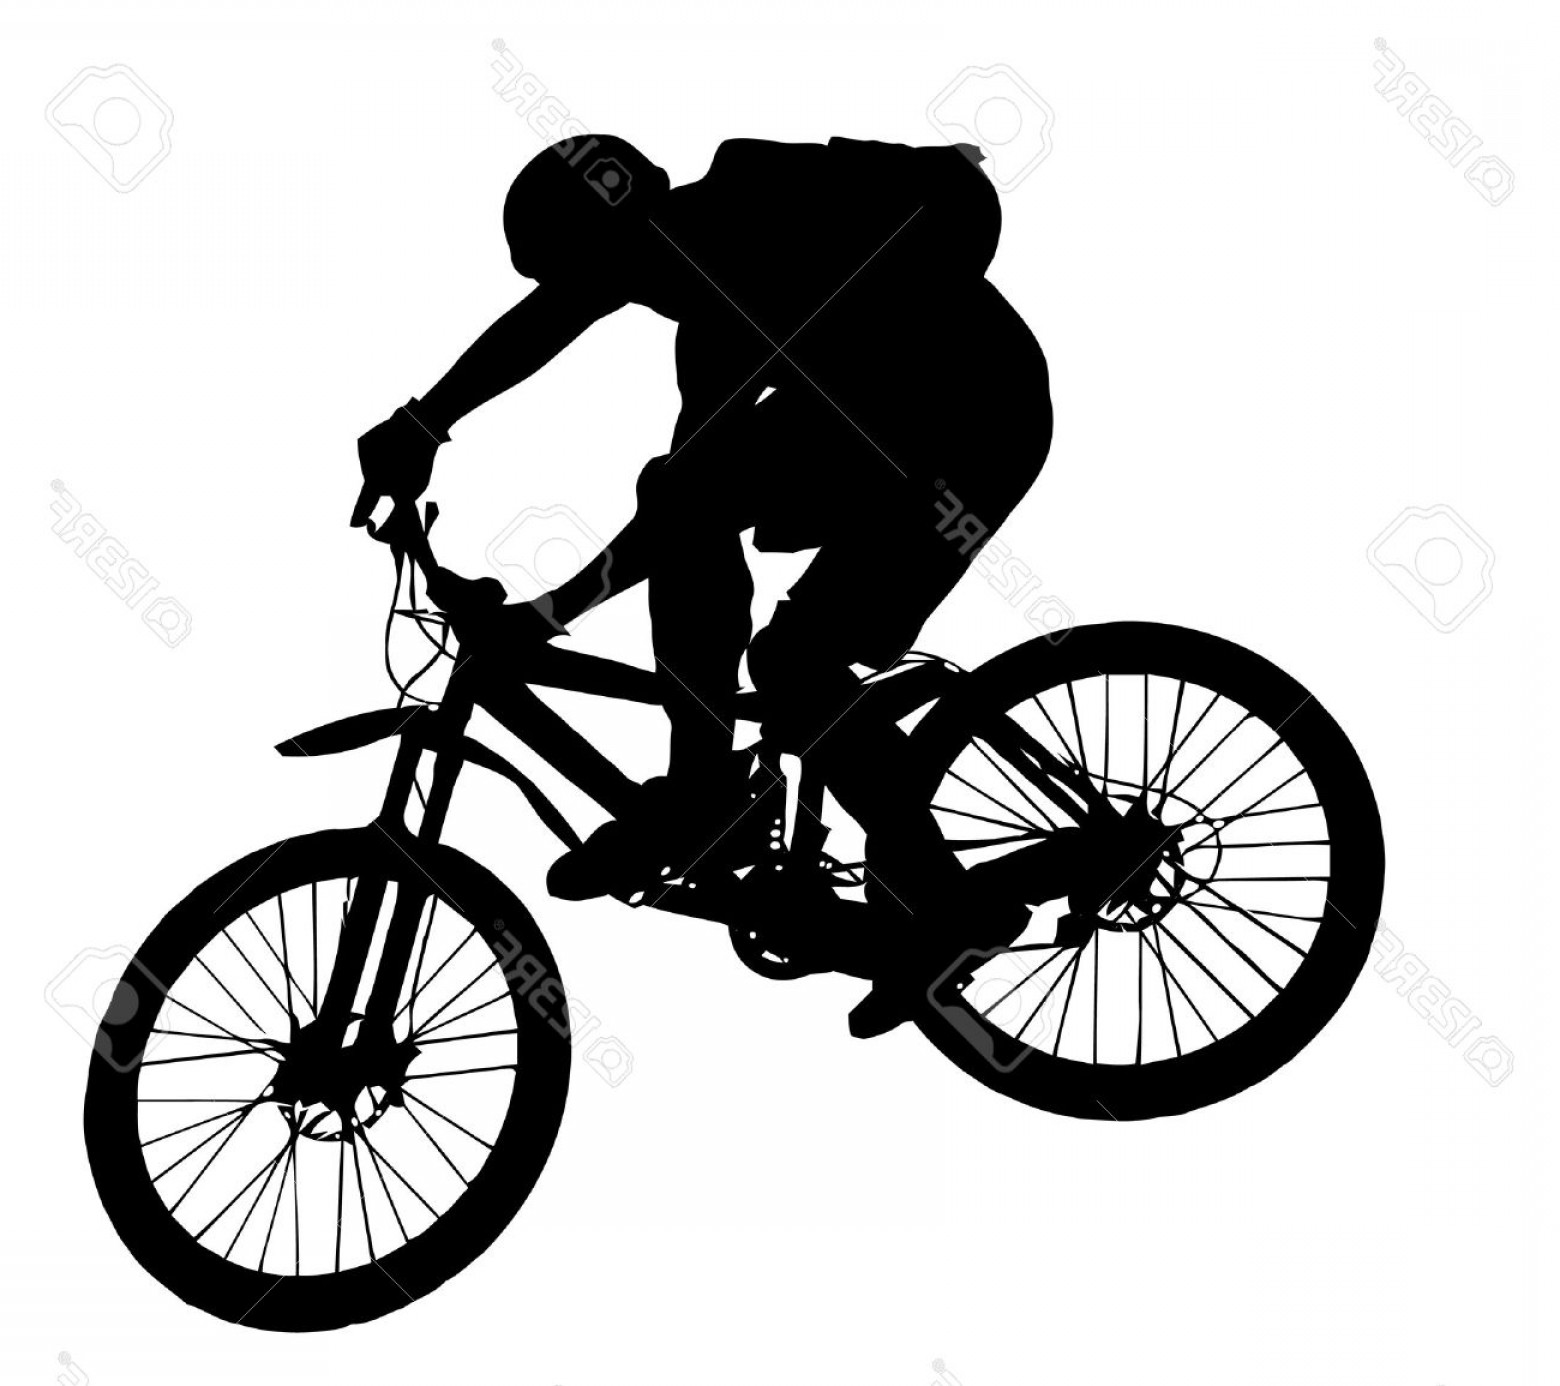 Mountain Bike Silhouette Vector: Photovector Jump With A Mountain Bike Silhouette